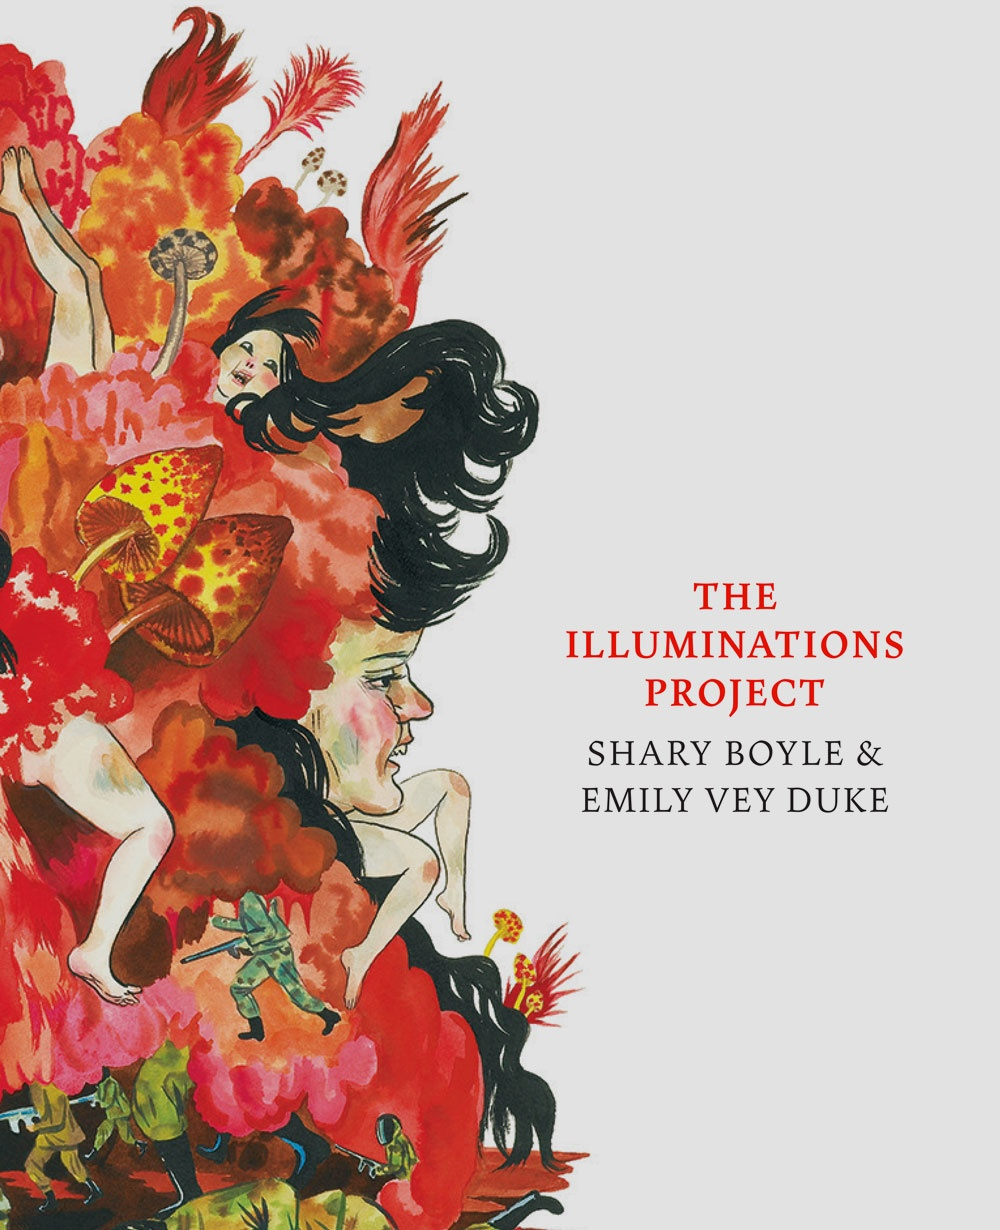 The Illuminations Project book cover